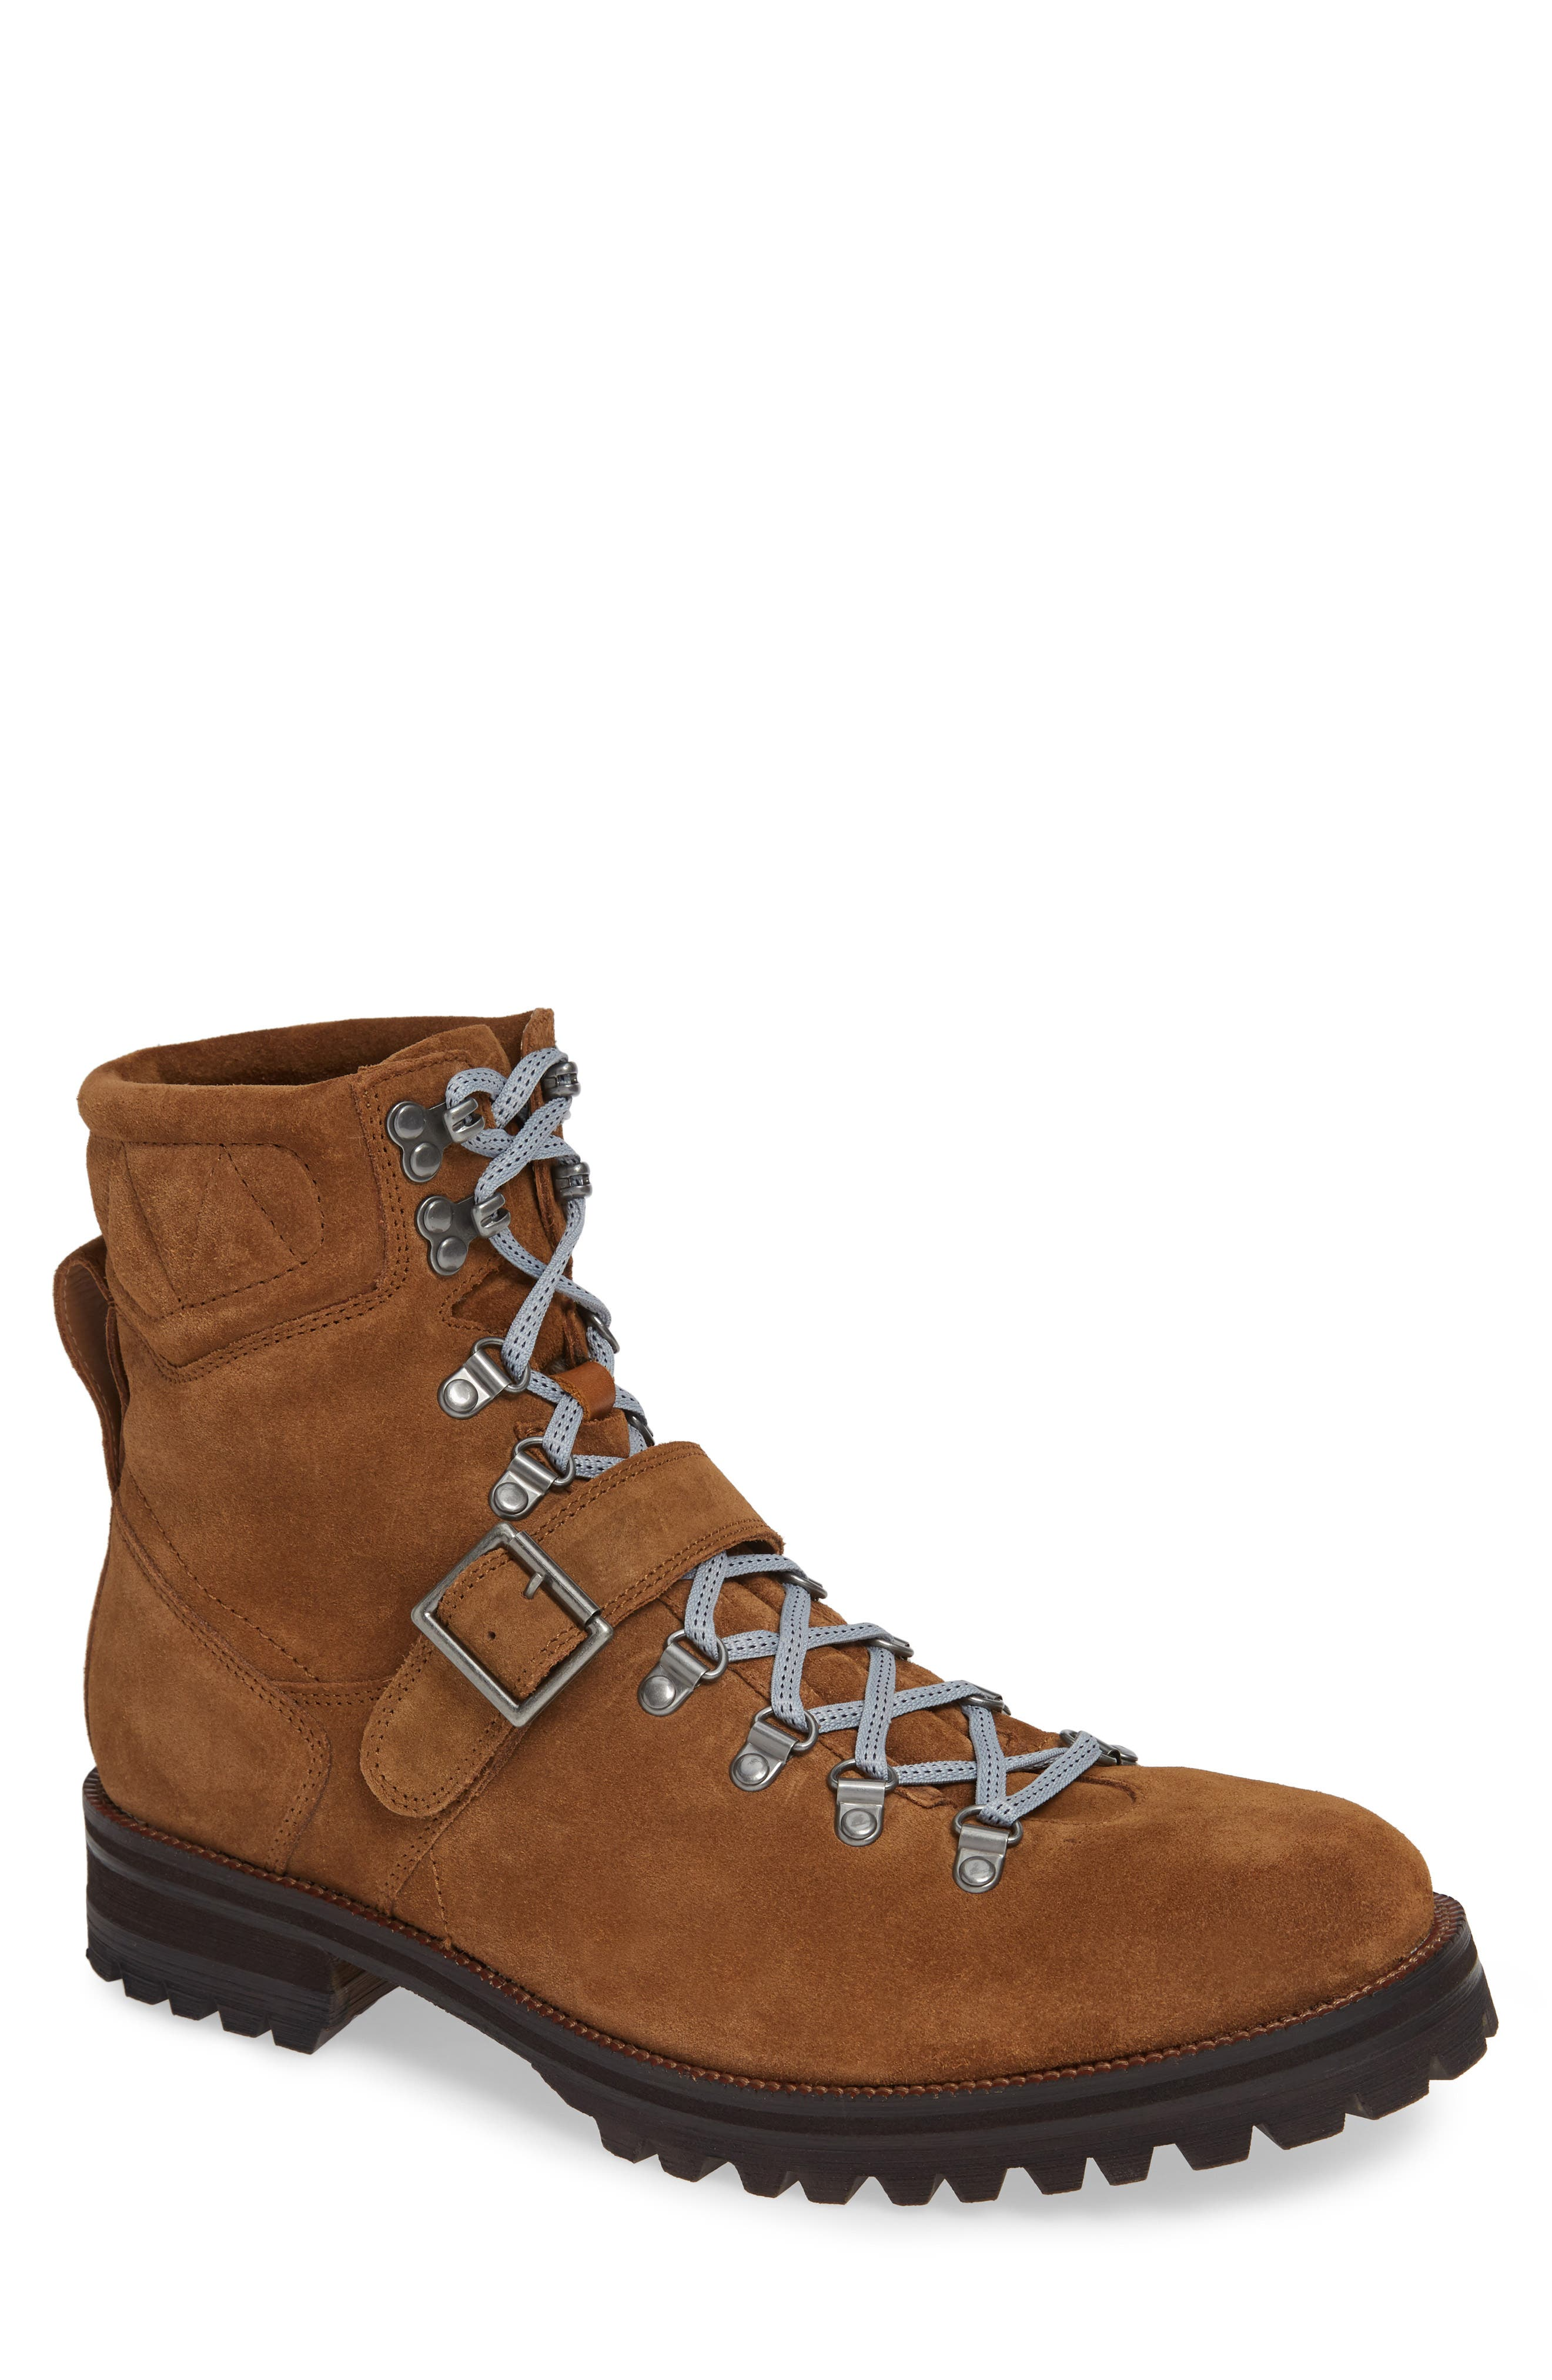 MICHAEL BASTIAN Storm Lug Hiker Boot in Tan Suede